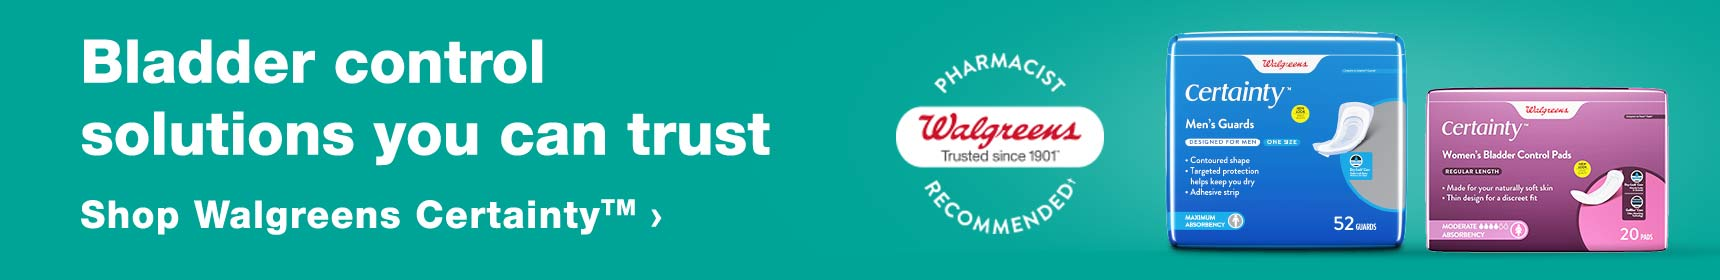 Bladder control solutions you can trust. Walgreens Pharmacist Reccommended.  Shop Walgreens Certainty(TM